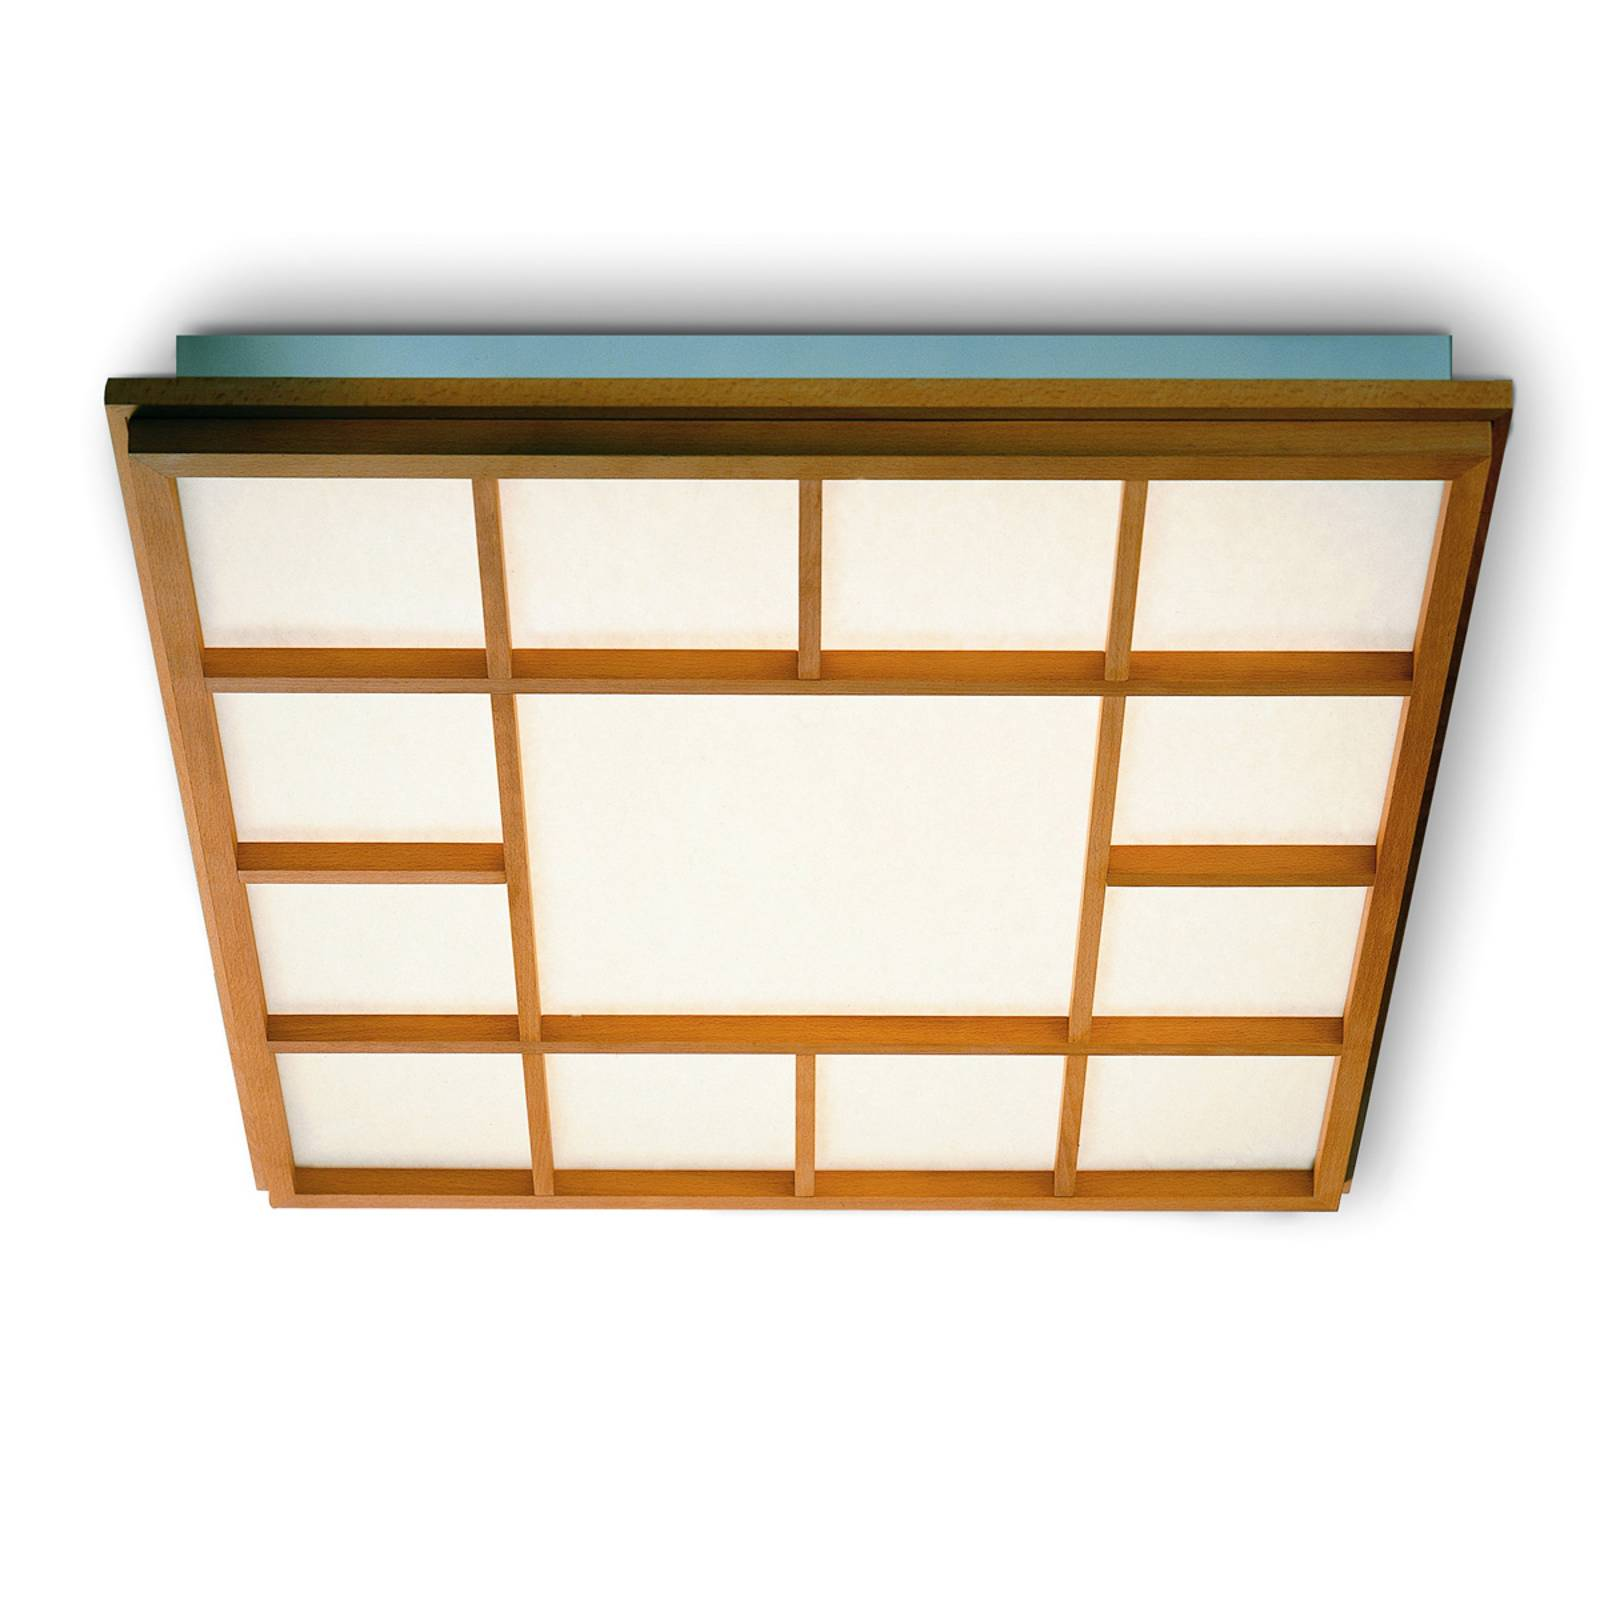 Square LED ceiling light Kyoto 13, beech from Domus